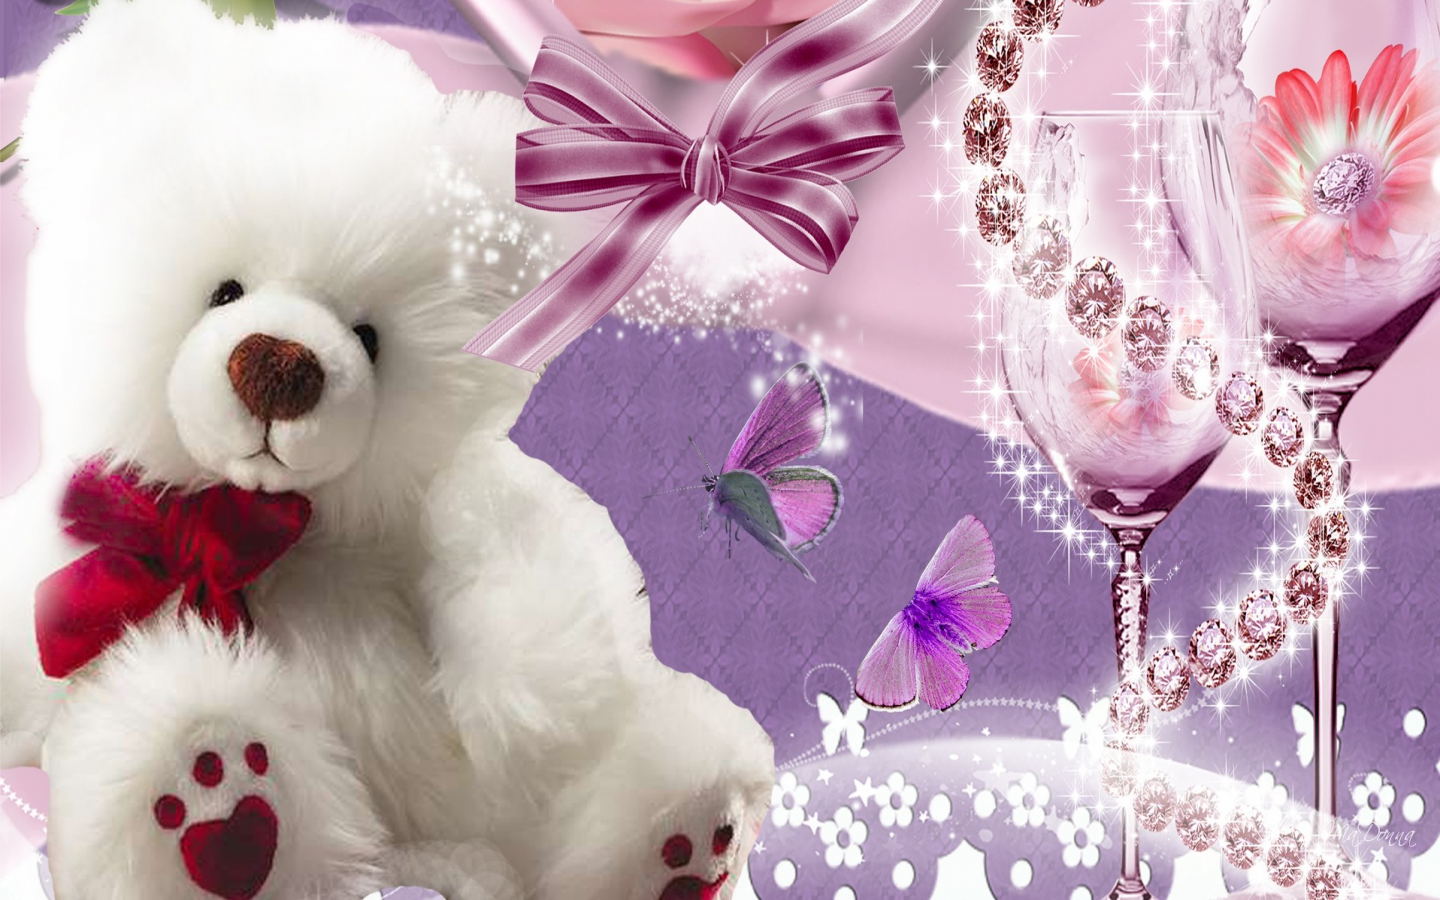 teddy bear wallpapers hd pictures one hd wallpaper pictures 1440x900